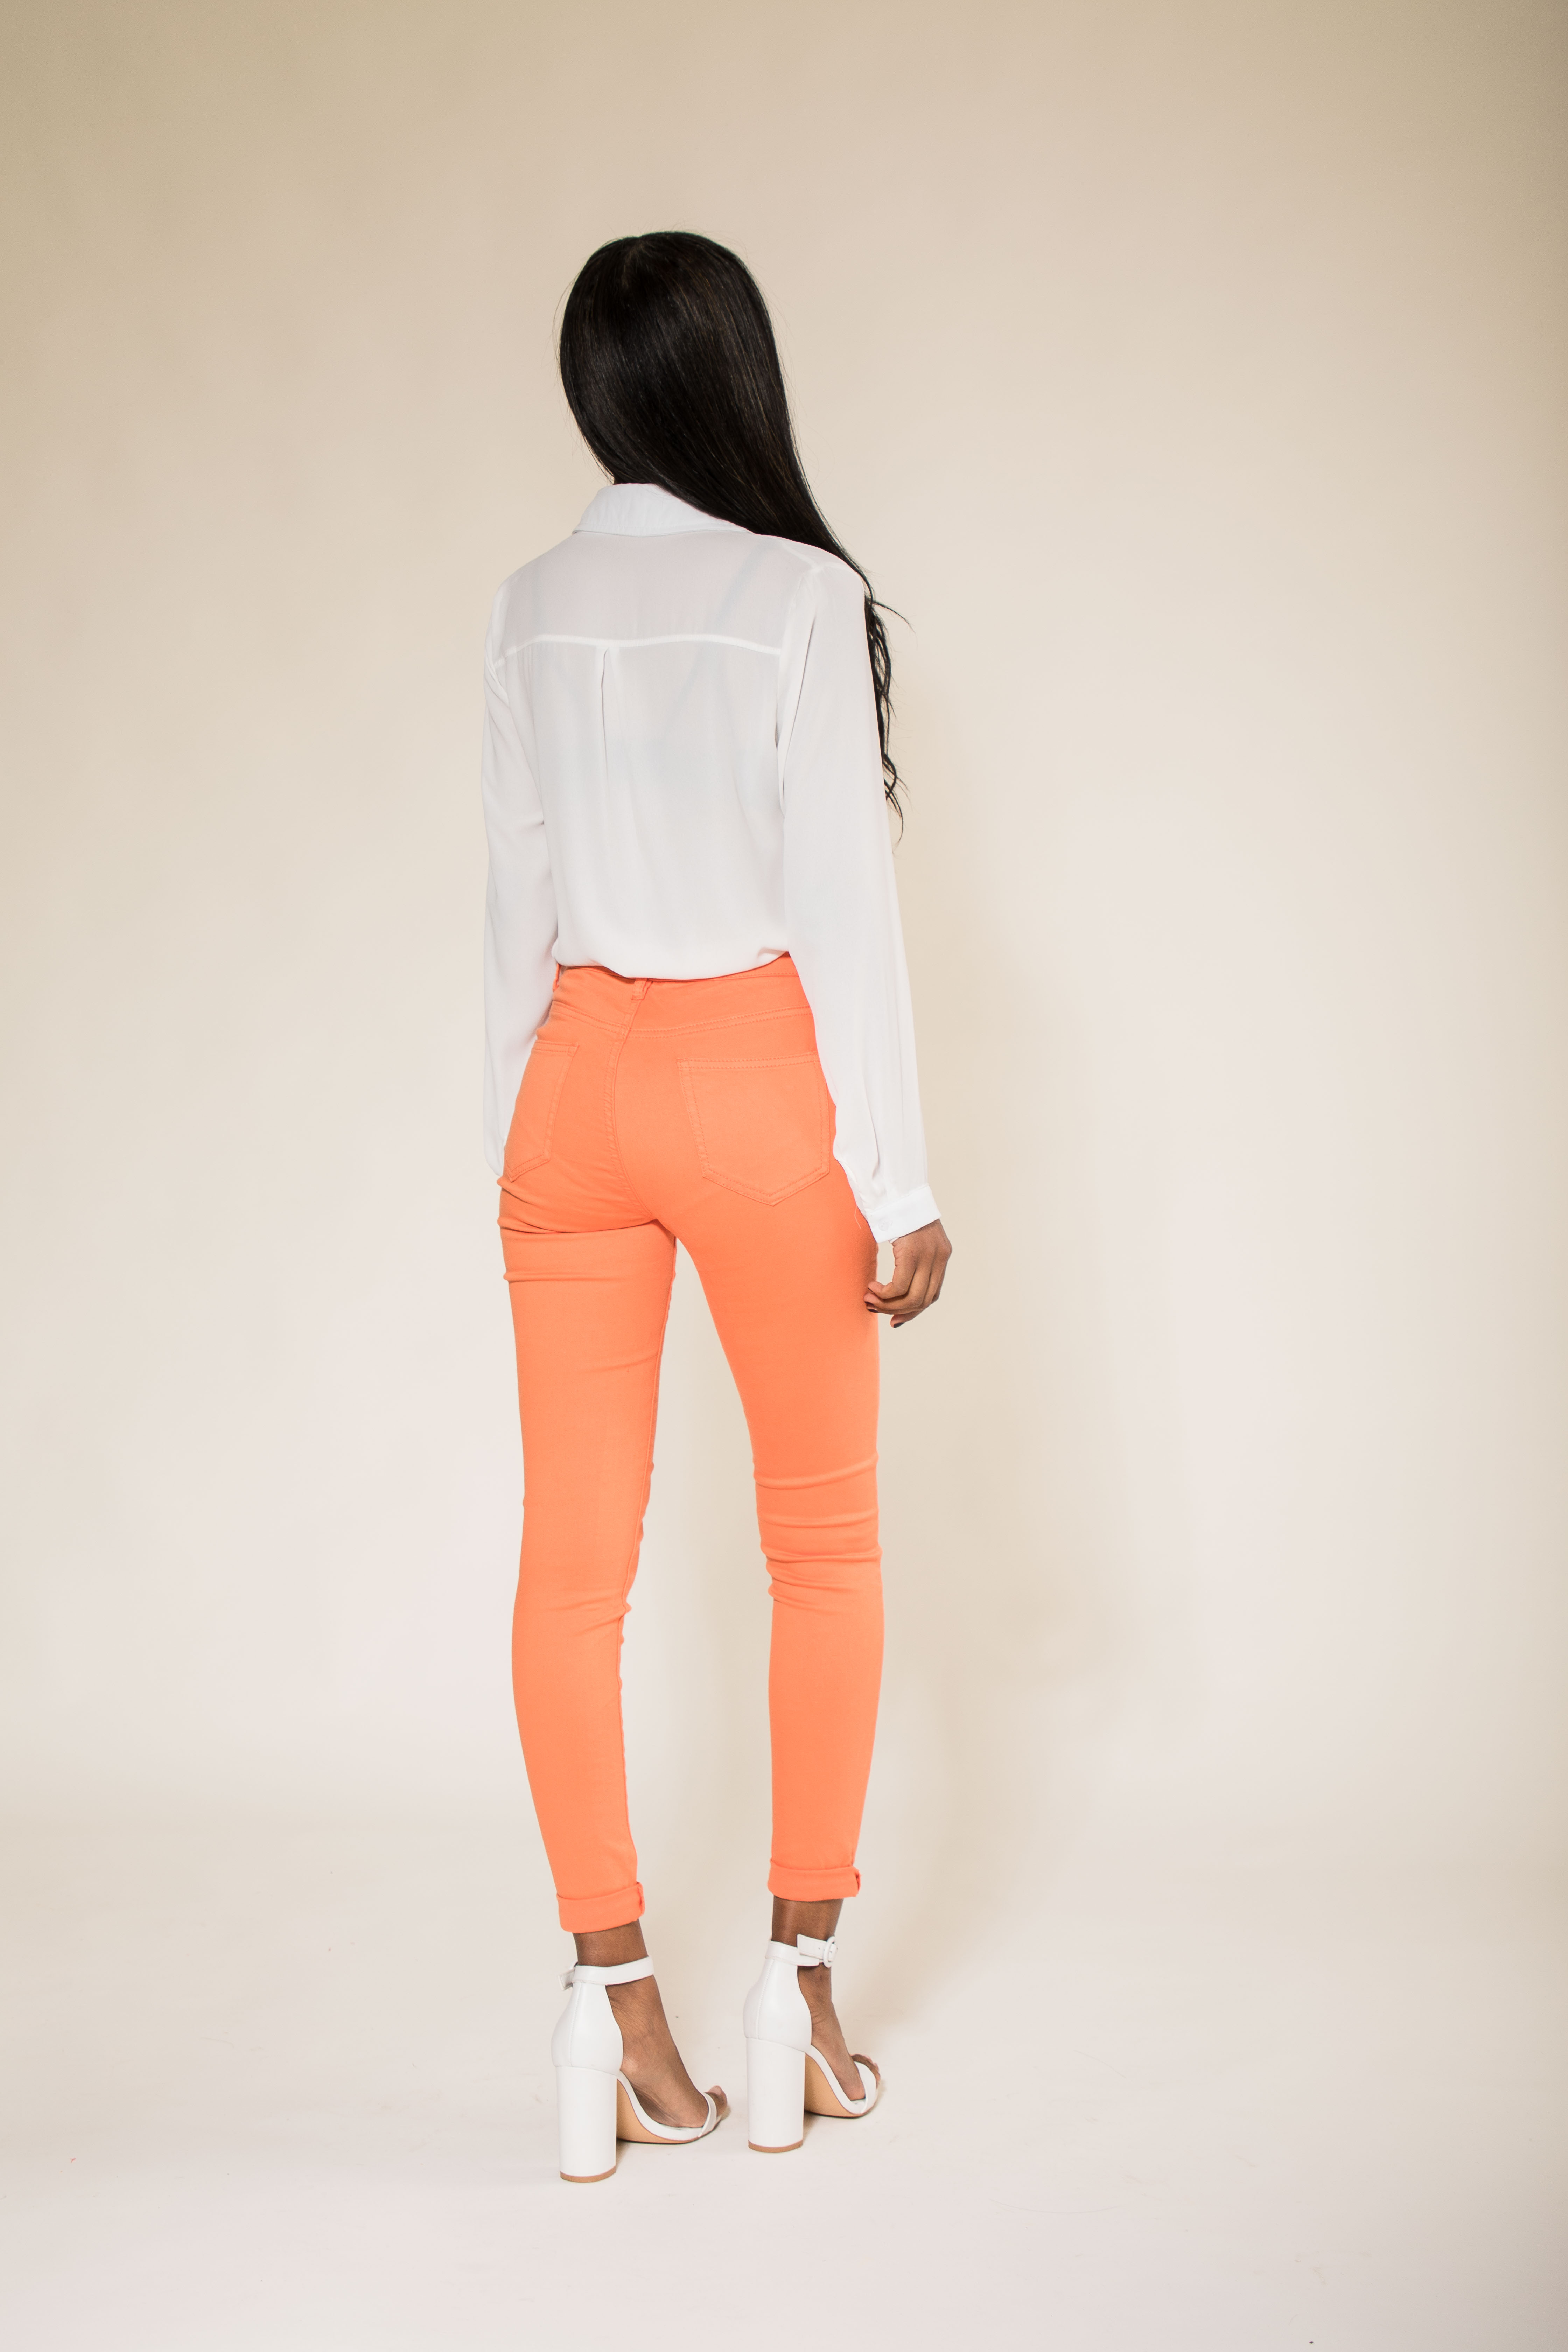 Women-High-Waisted-Jeans-Ladies-Coloured-Stretchy-jeggings-Pants-Size-6-14 thumbnail 30